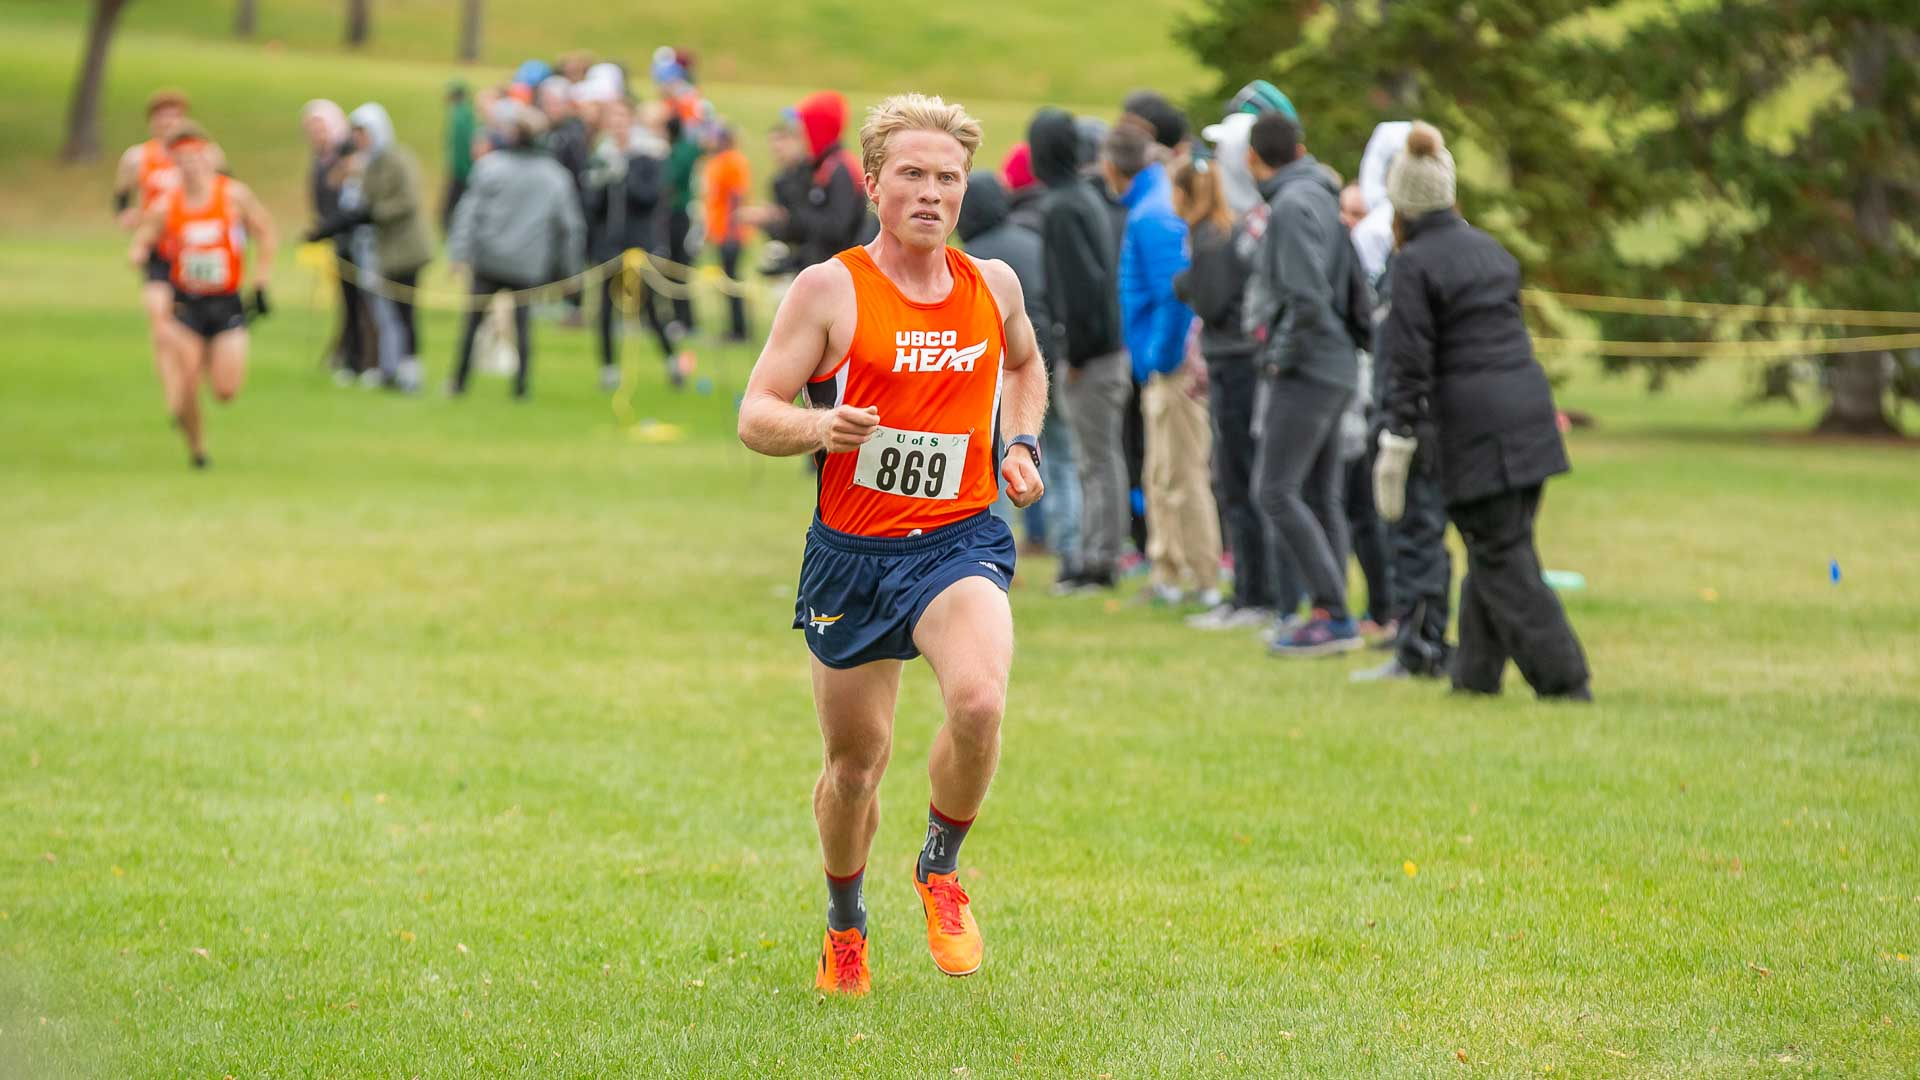 Mike Mitchell raced to 5th place in Saskatoon at the Canada West cross country event on Saturday (Sept. 28) (GetMyPhoto.ca)